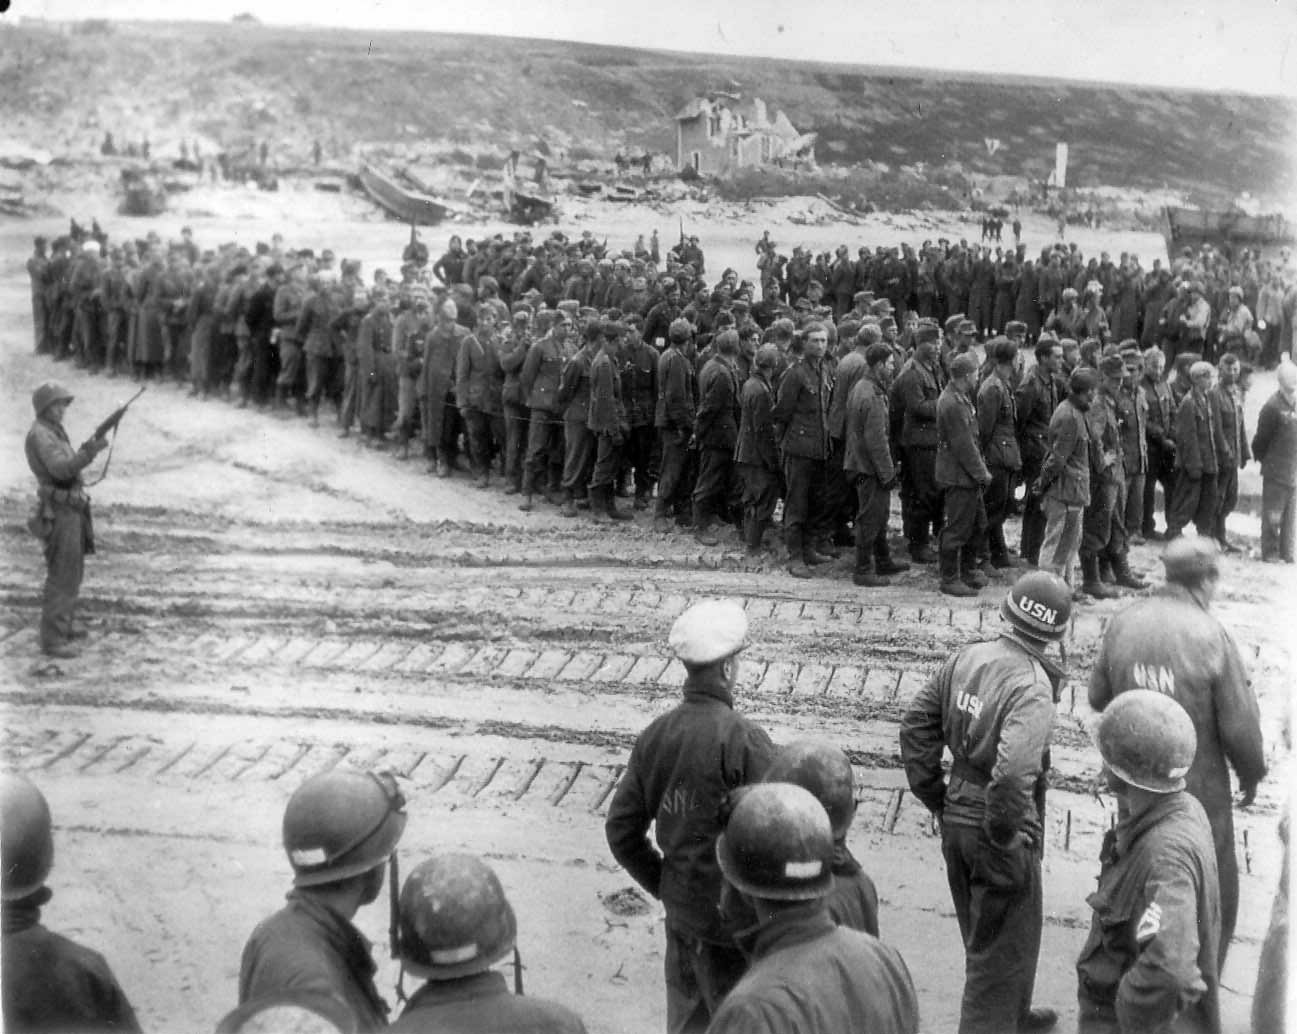 German POWs Normandy 15 June 1944